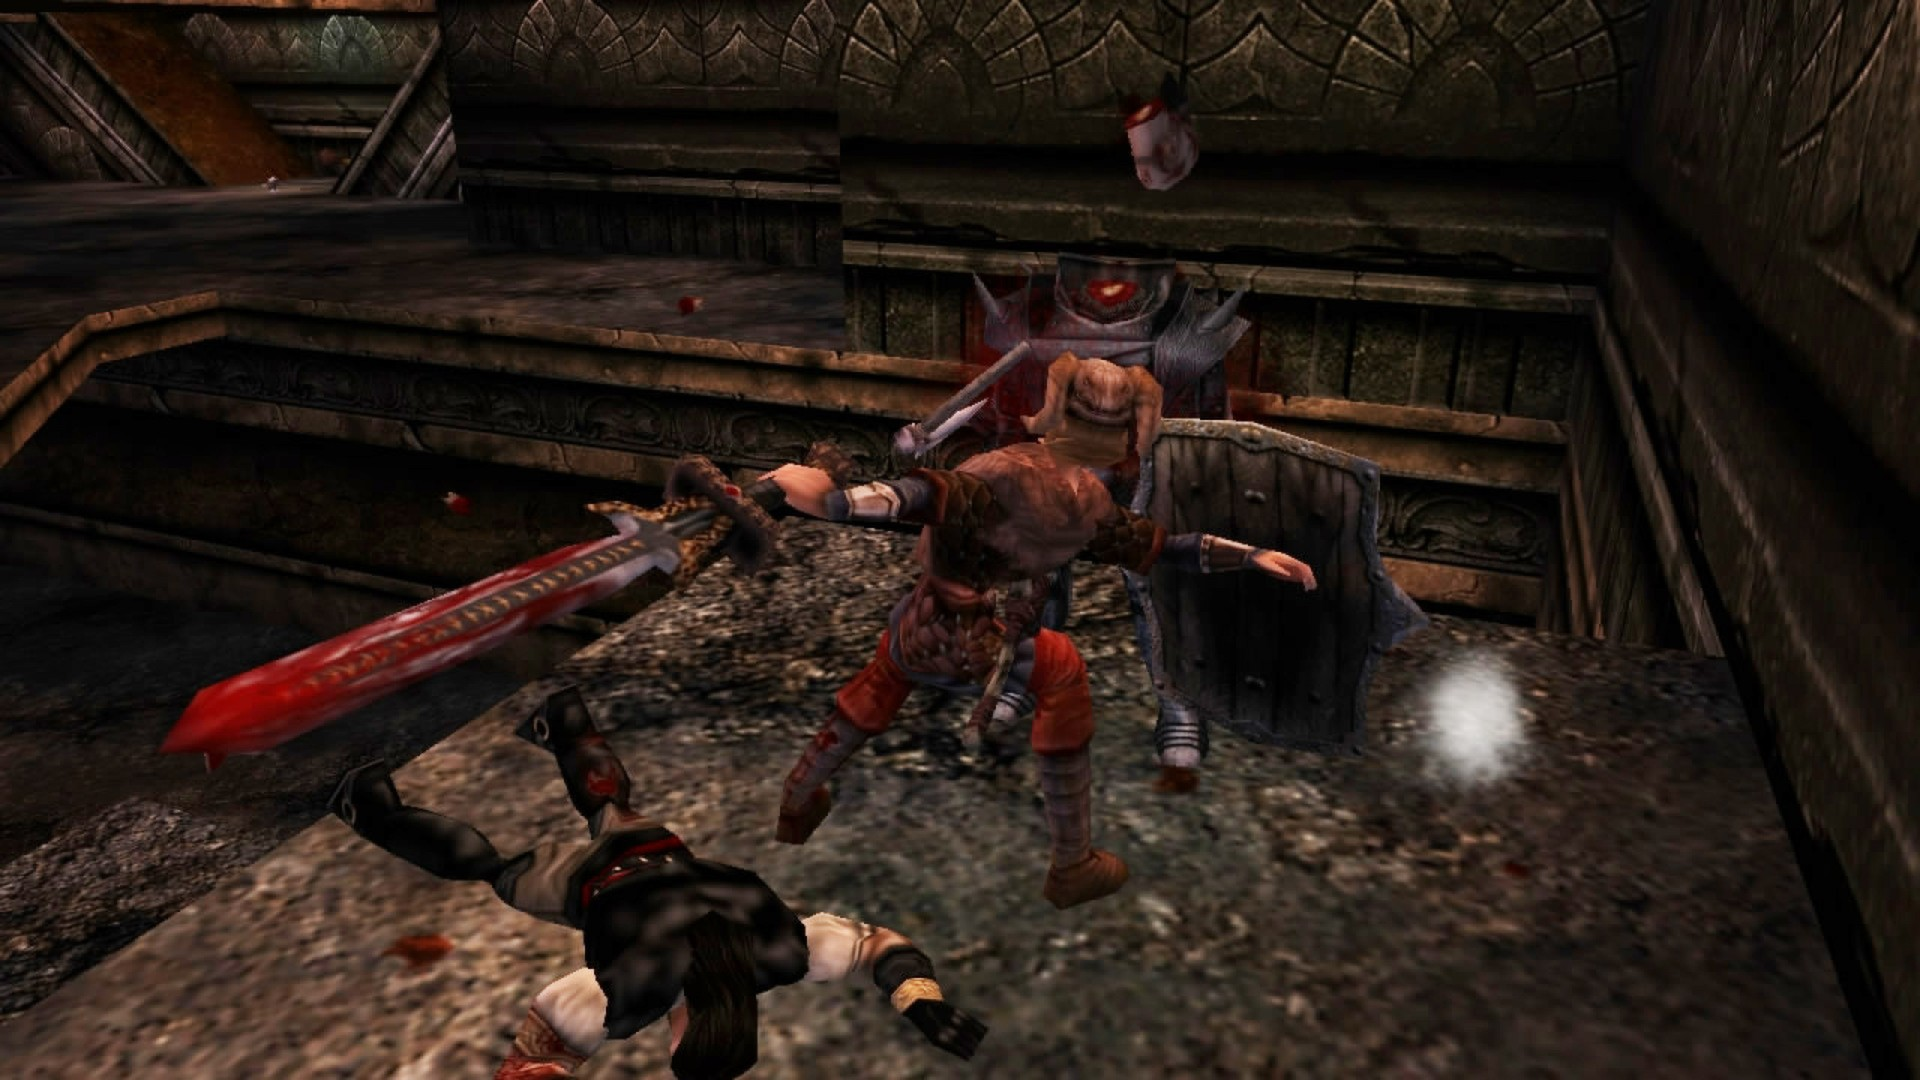 hd adventure games for pc free download full version